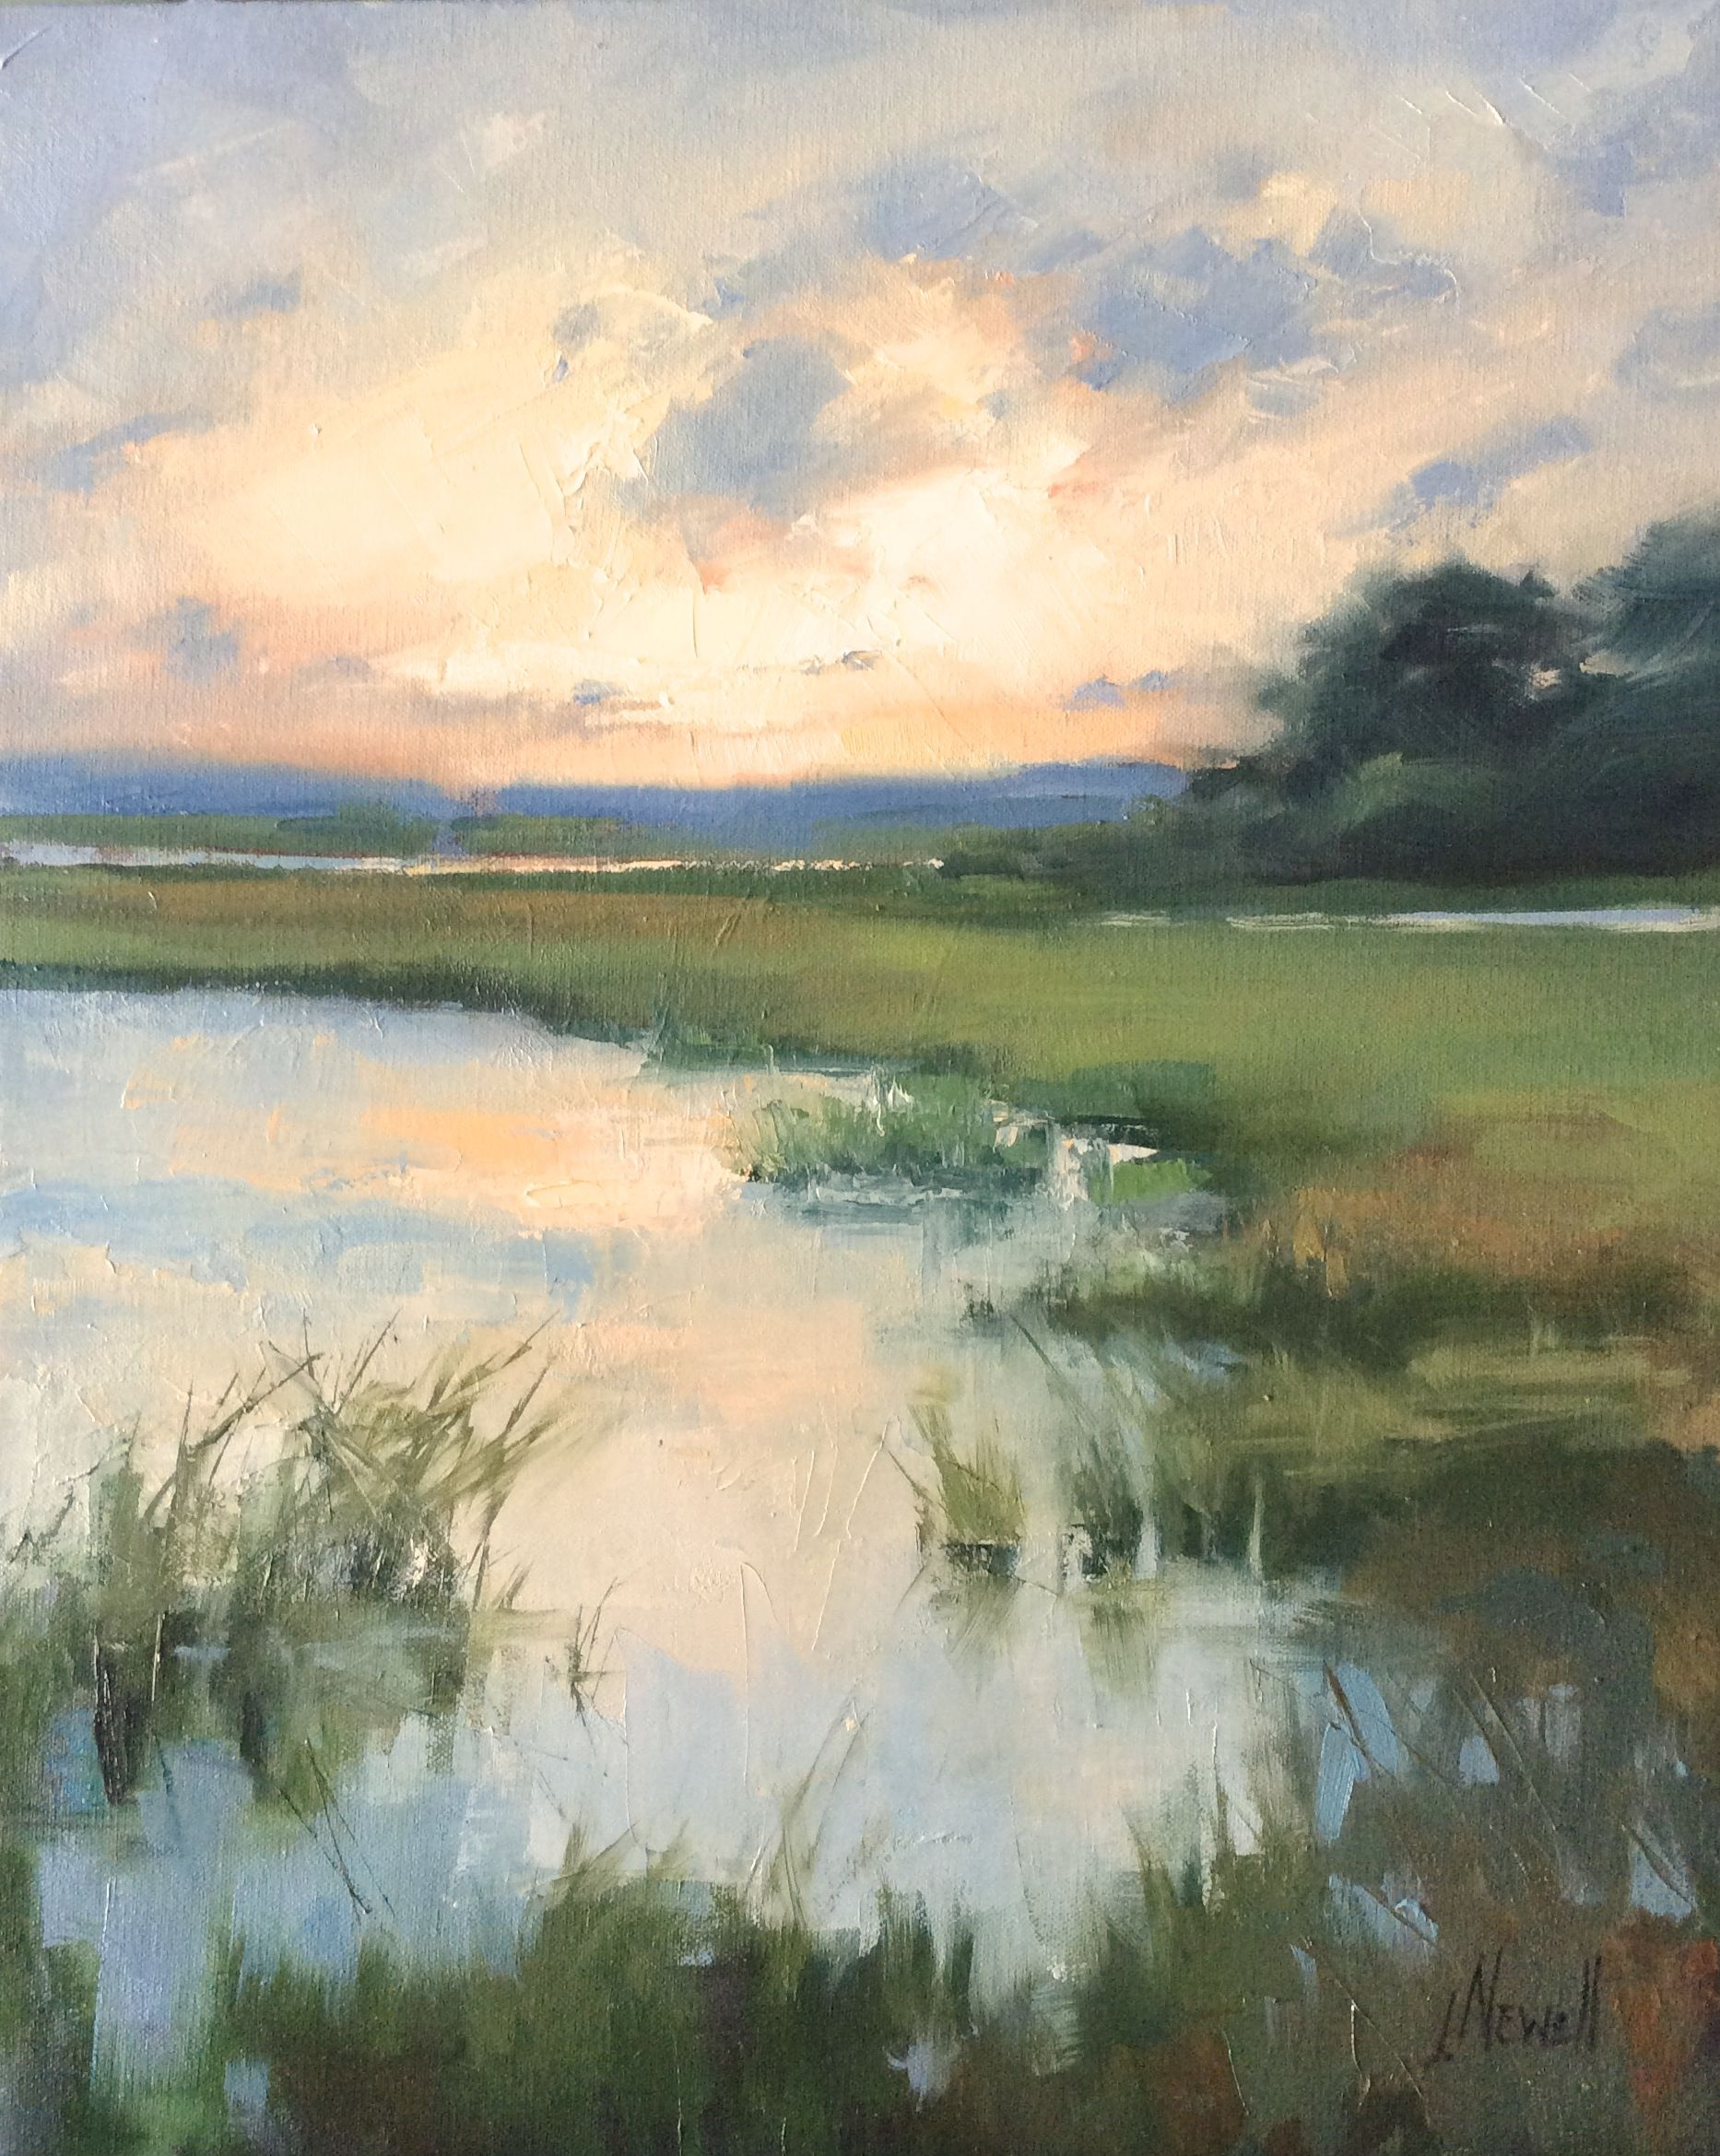 Summer Evening Marsh By Jacki Newell 16x20 Oil Sold Oil Painting Landscape Oil Painting Inspiration Landscape Art